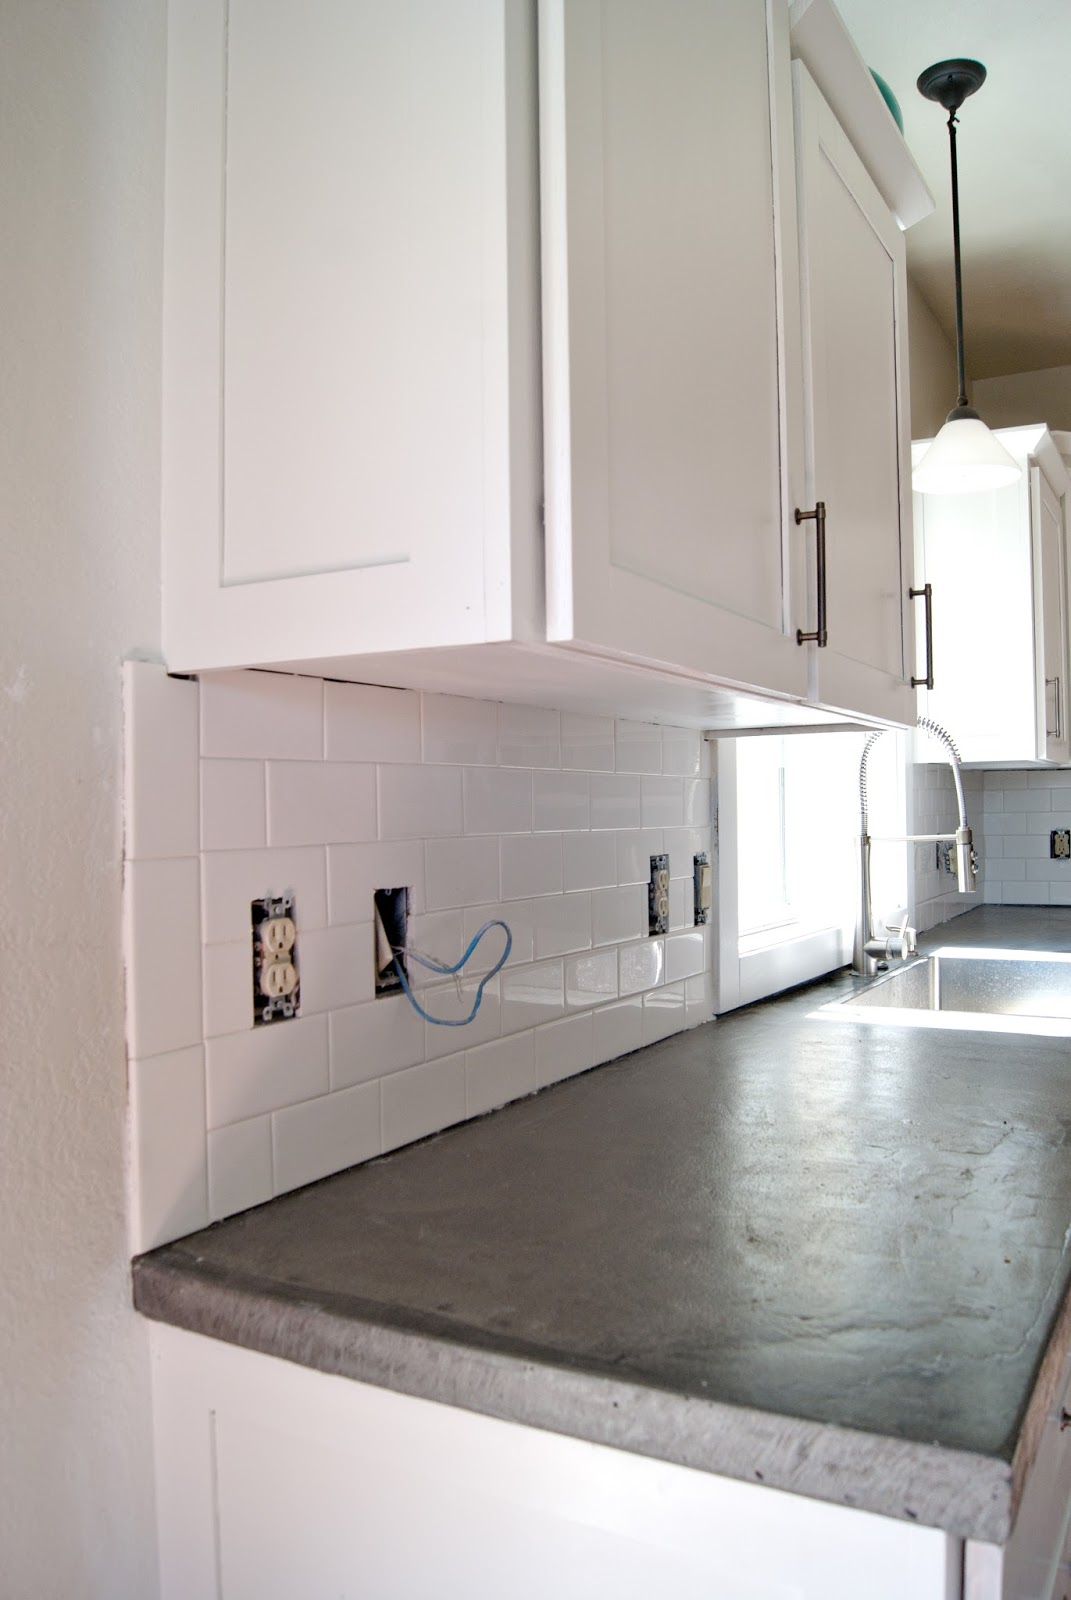 Subway tile installation tips on grouting with fusion pro next dailygadgetfo Choice Image